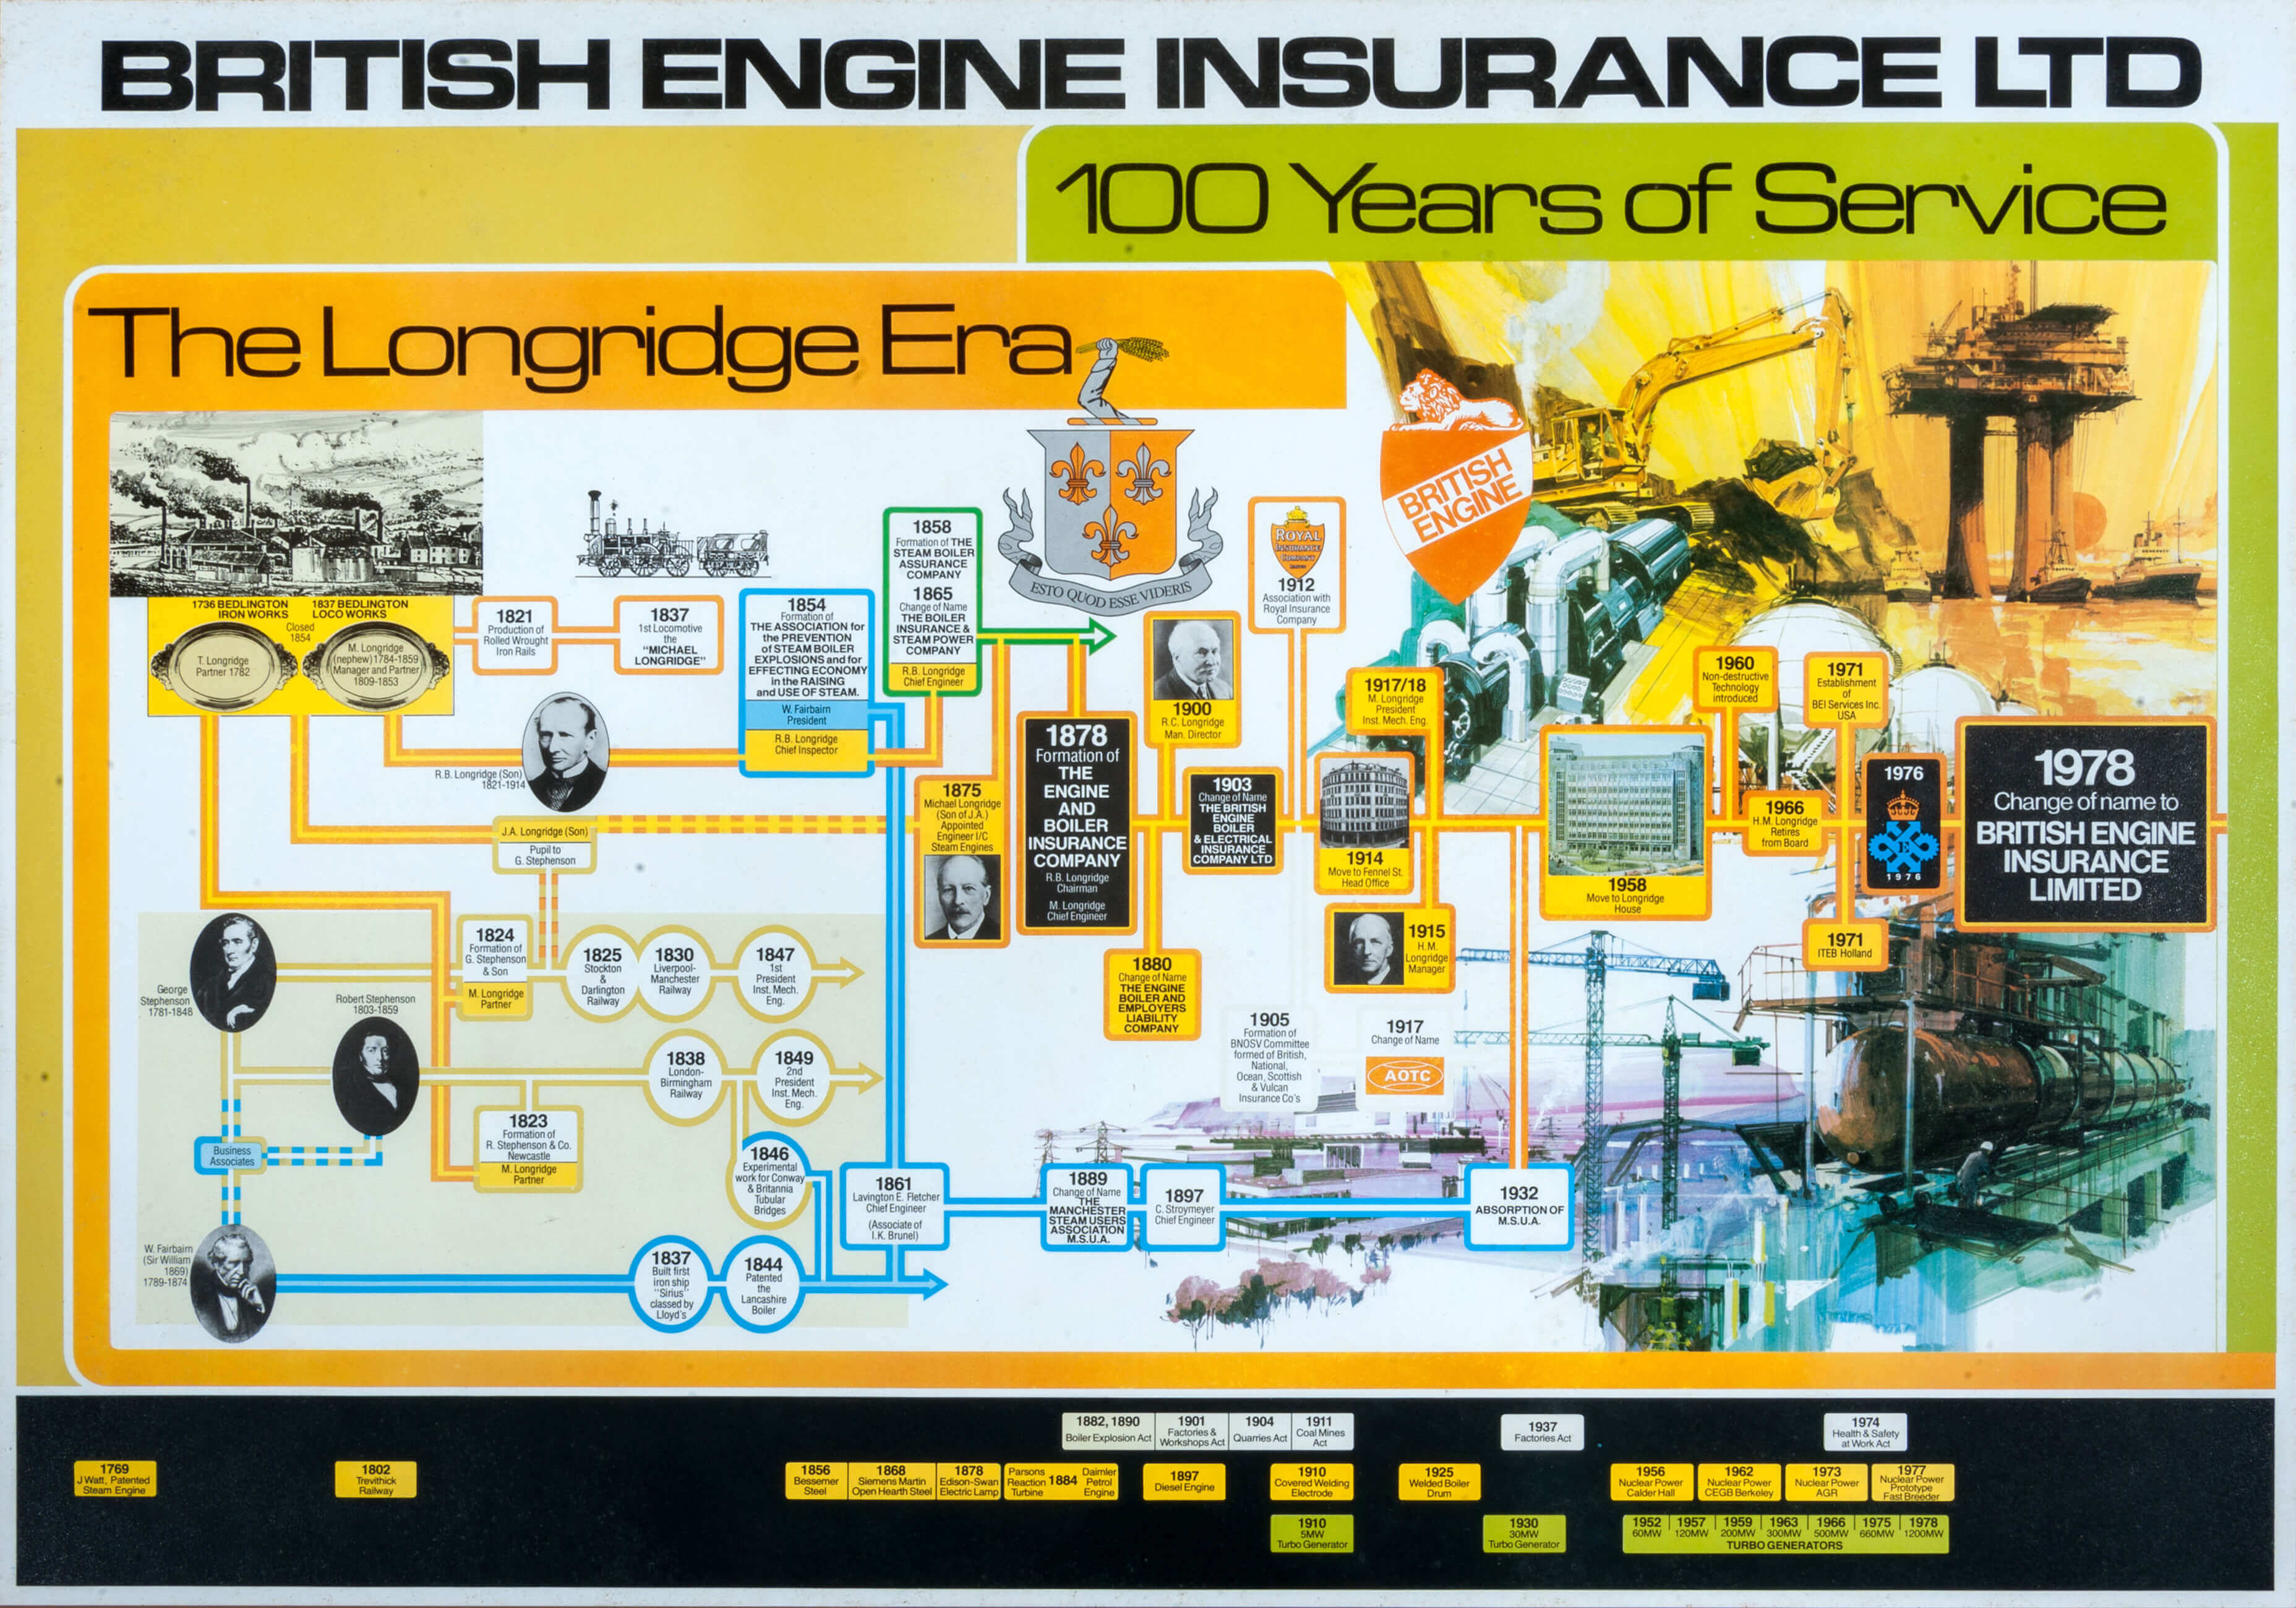 British Engine Insurance History